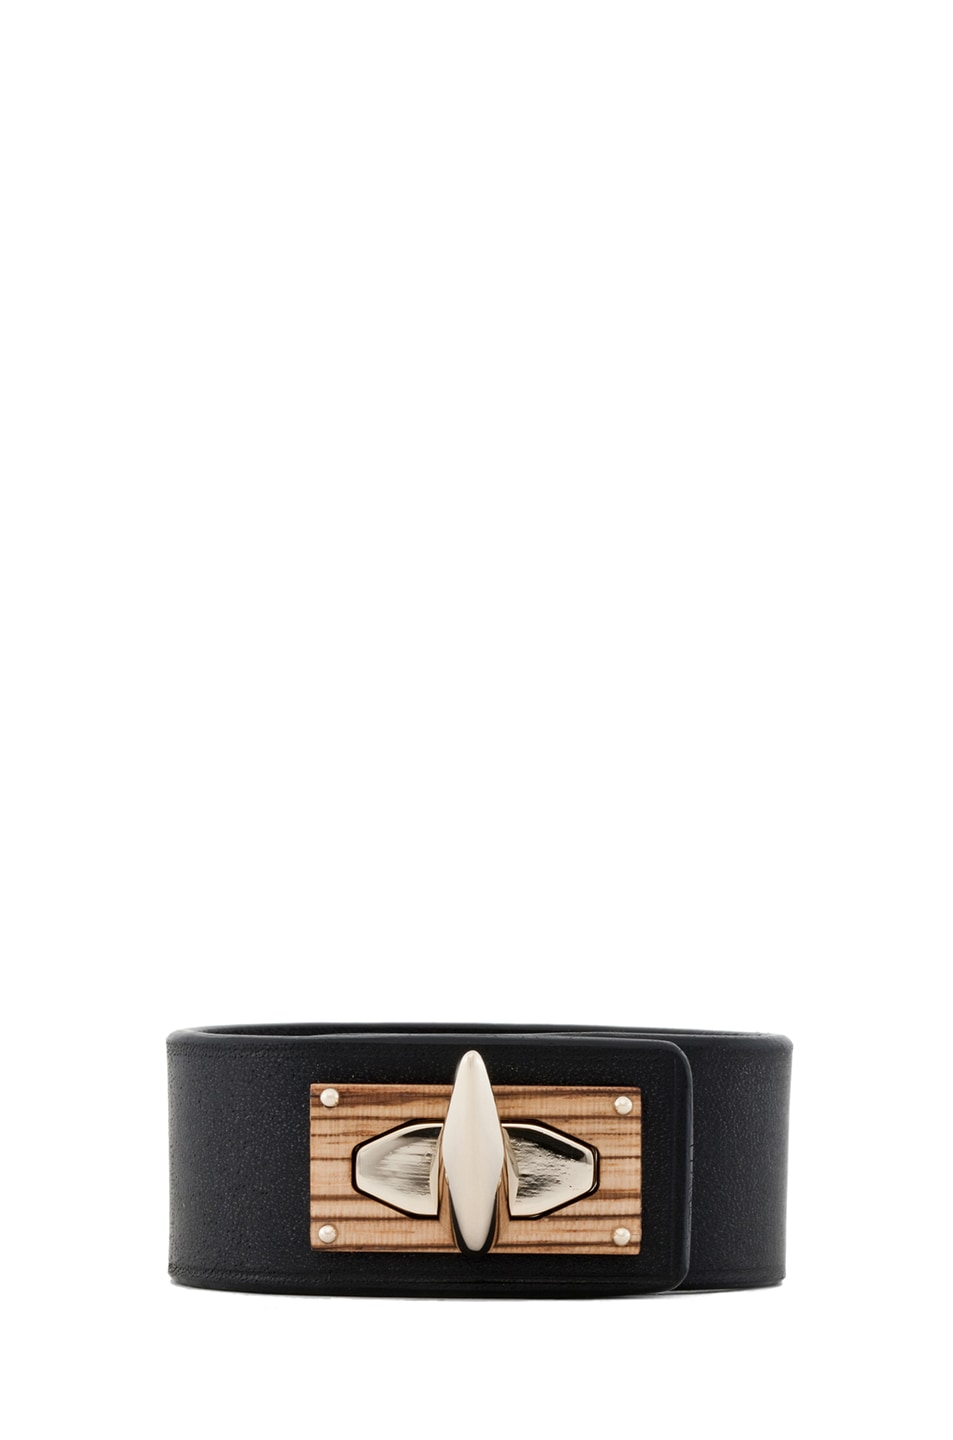 Image 1 of GIVENCHY Shark Lock Bracelet in Black Leather & Wood